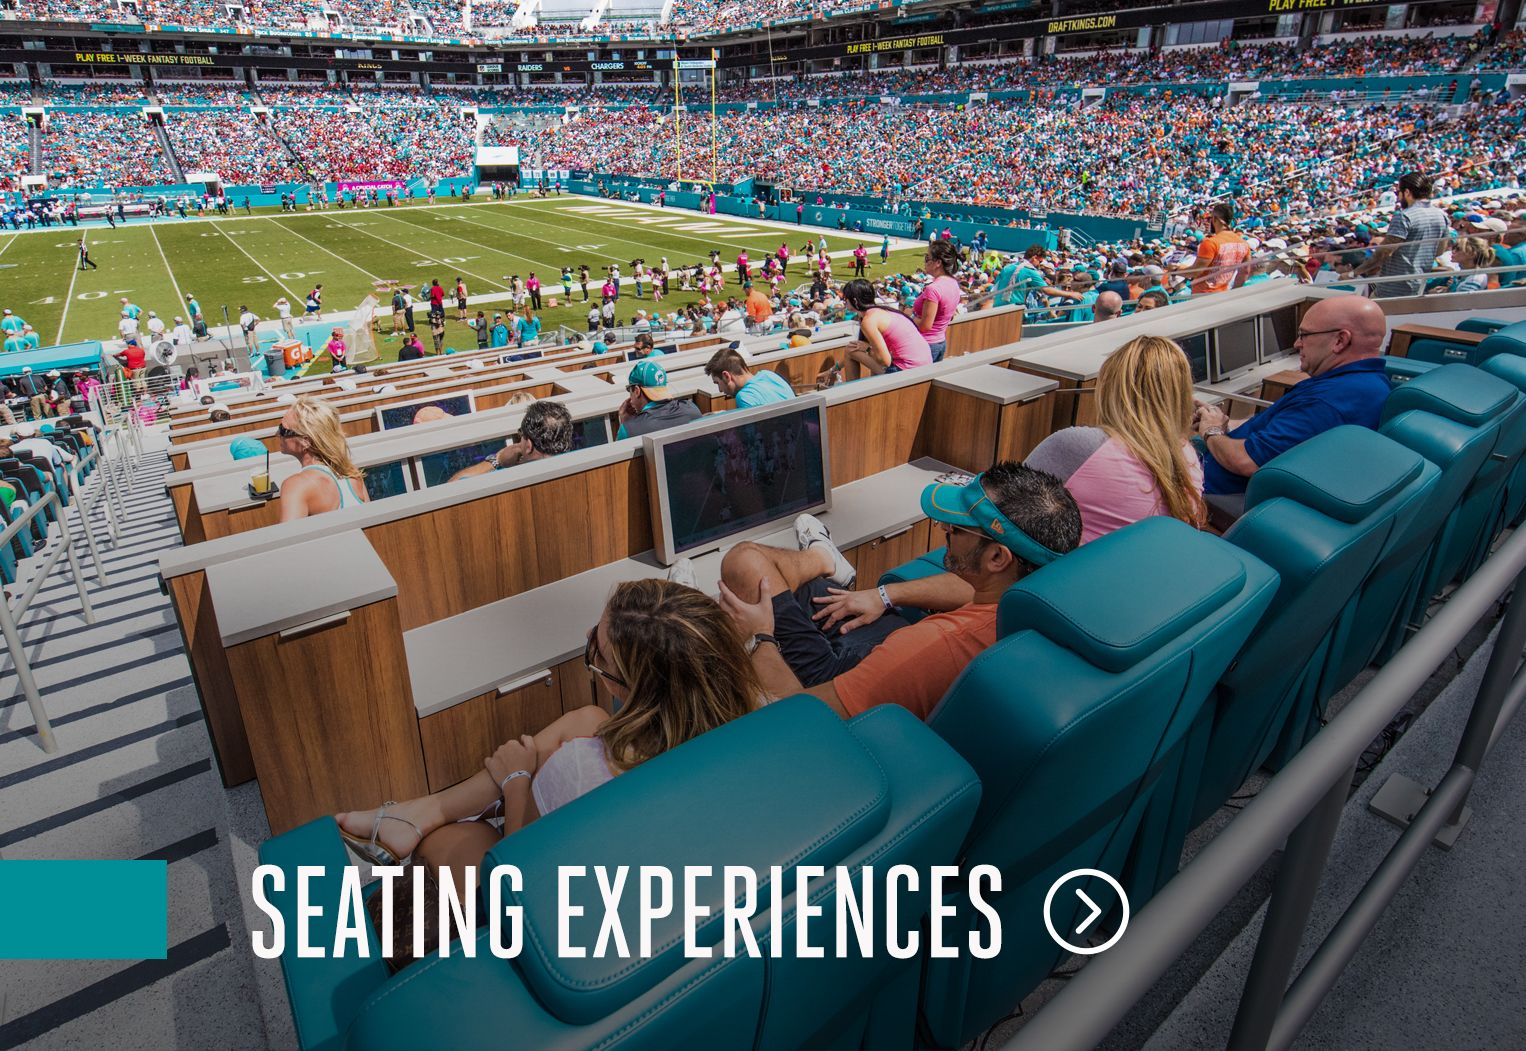 Image: Click Here For More Information On Seating Experiences